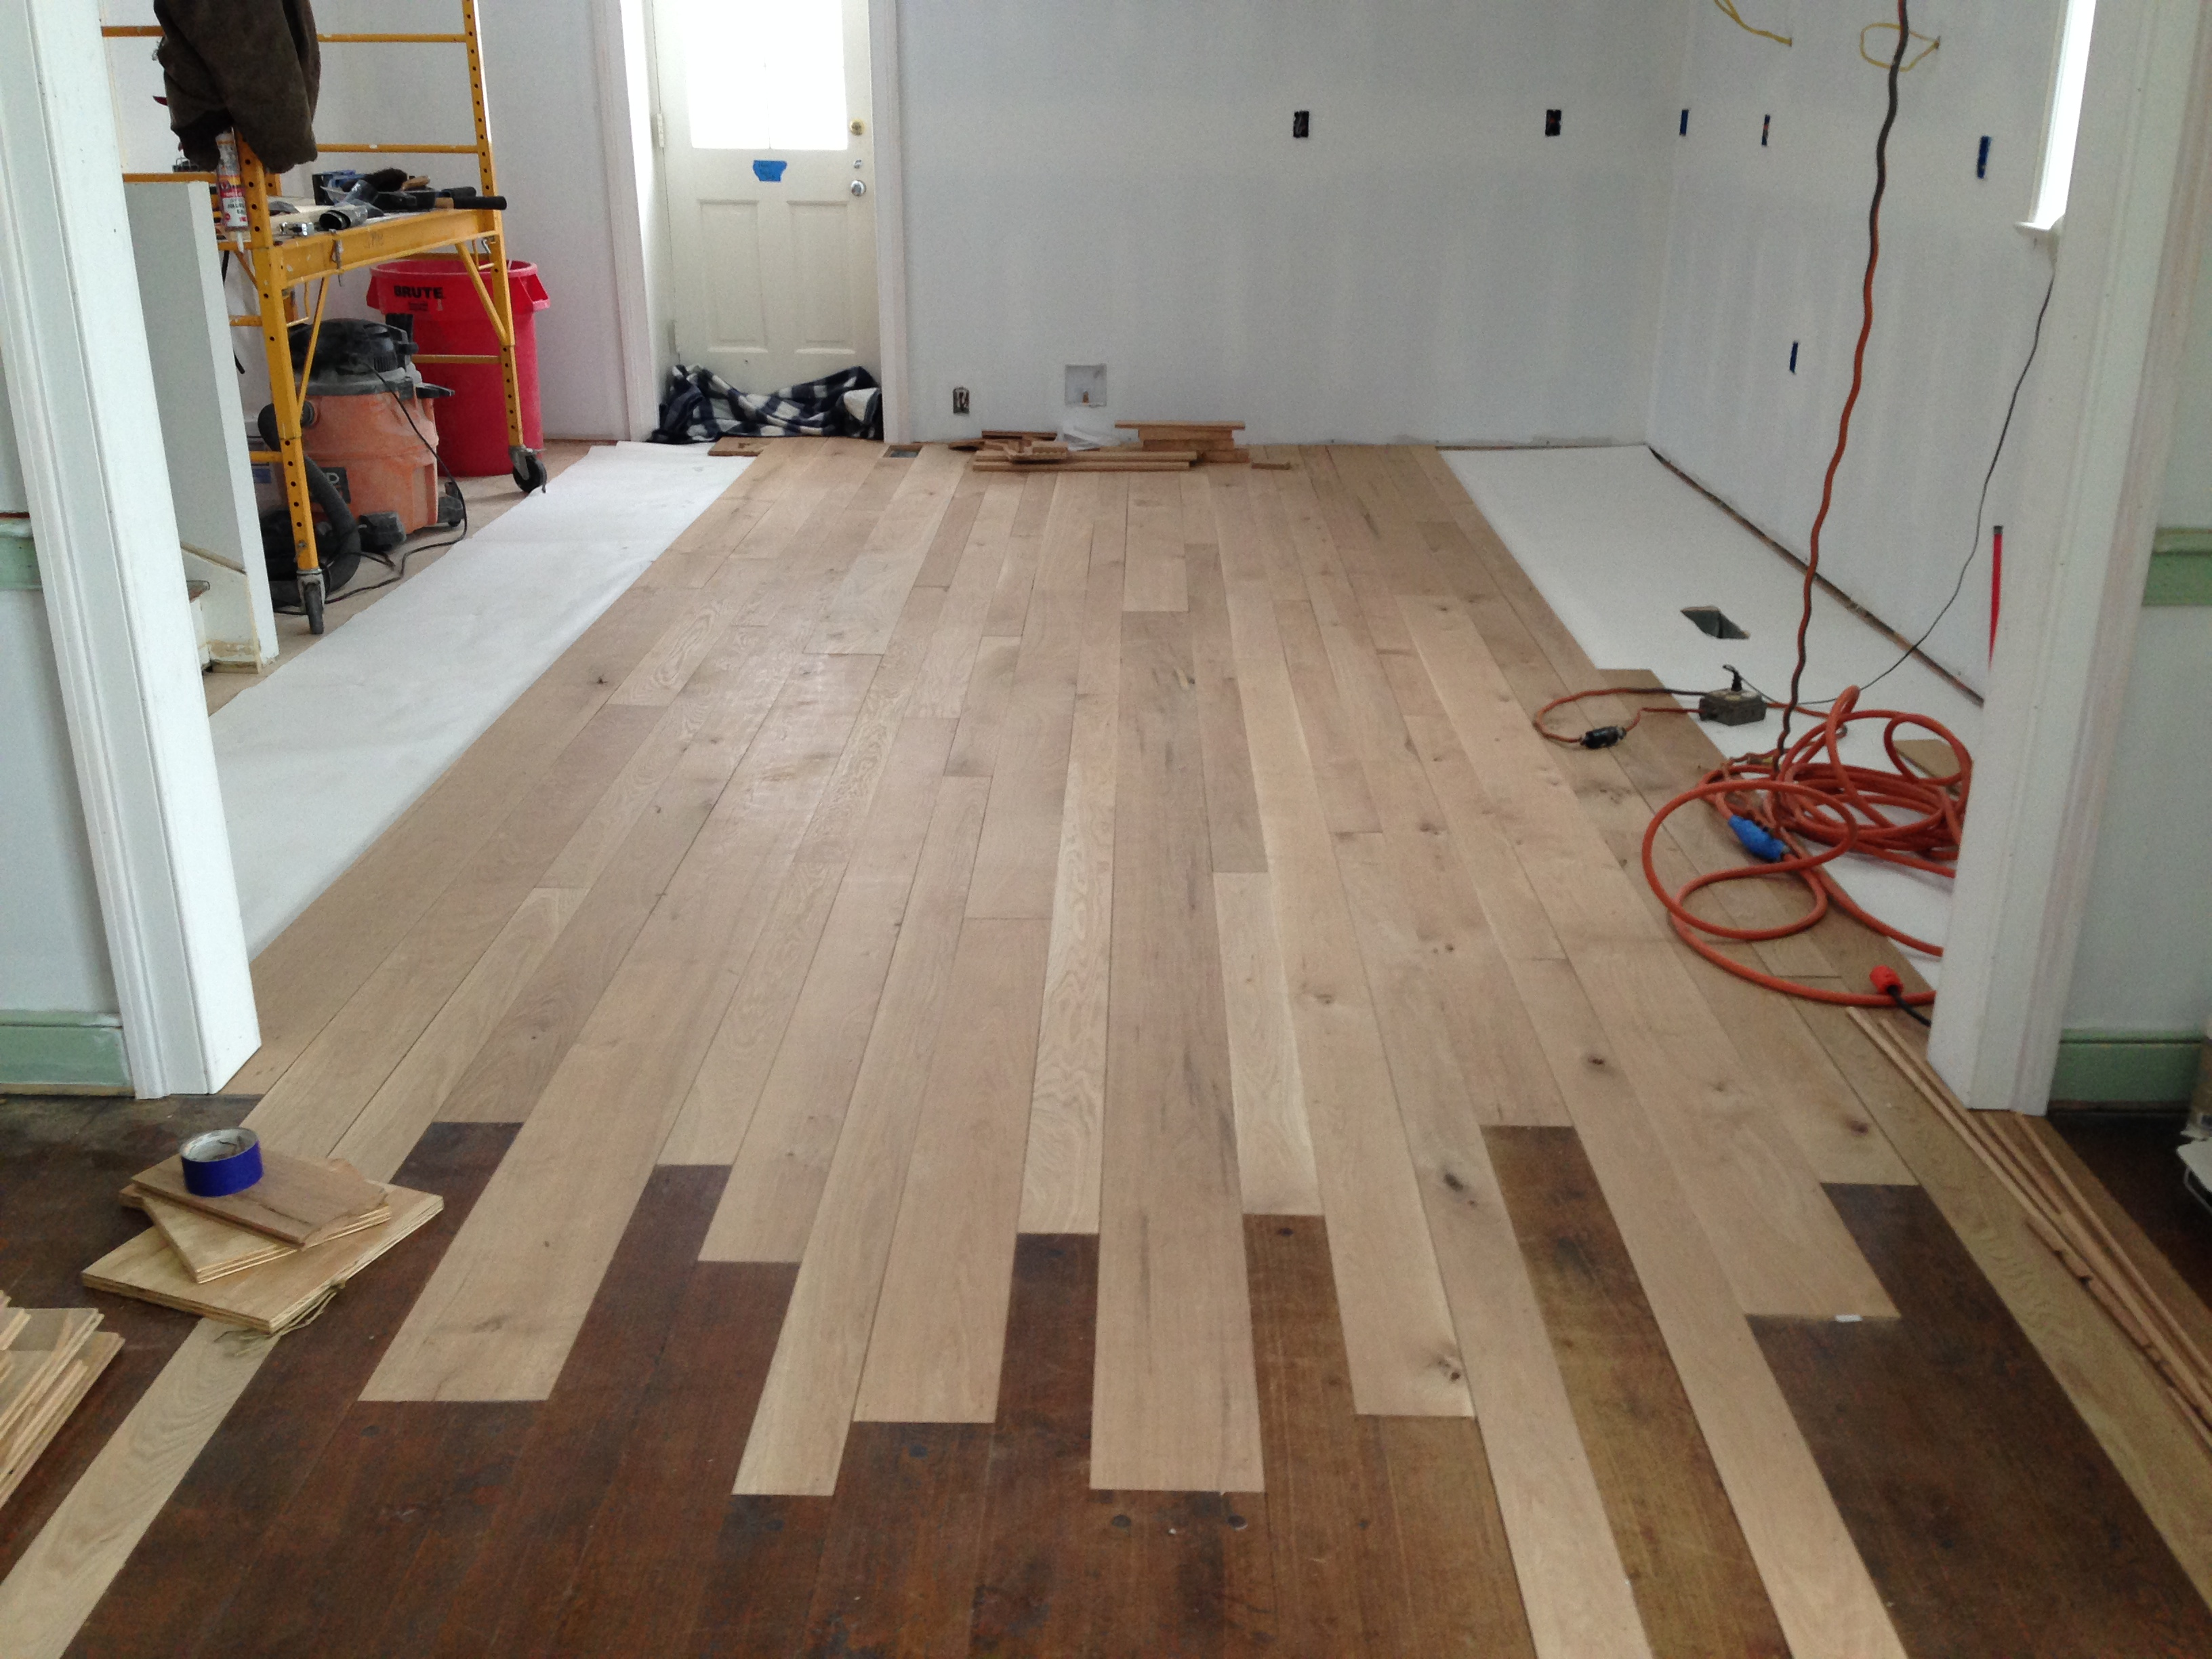 Oak Floors In Kitchen Mangum Renovations Bringing A Farmhouse In To The 21st Century